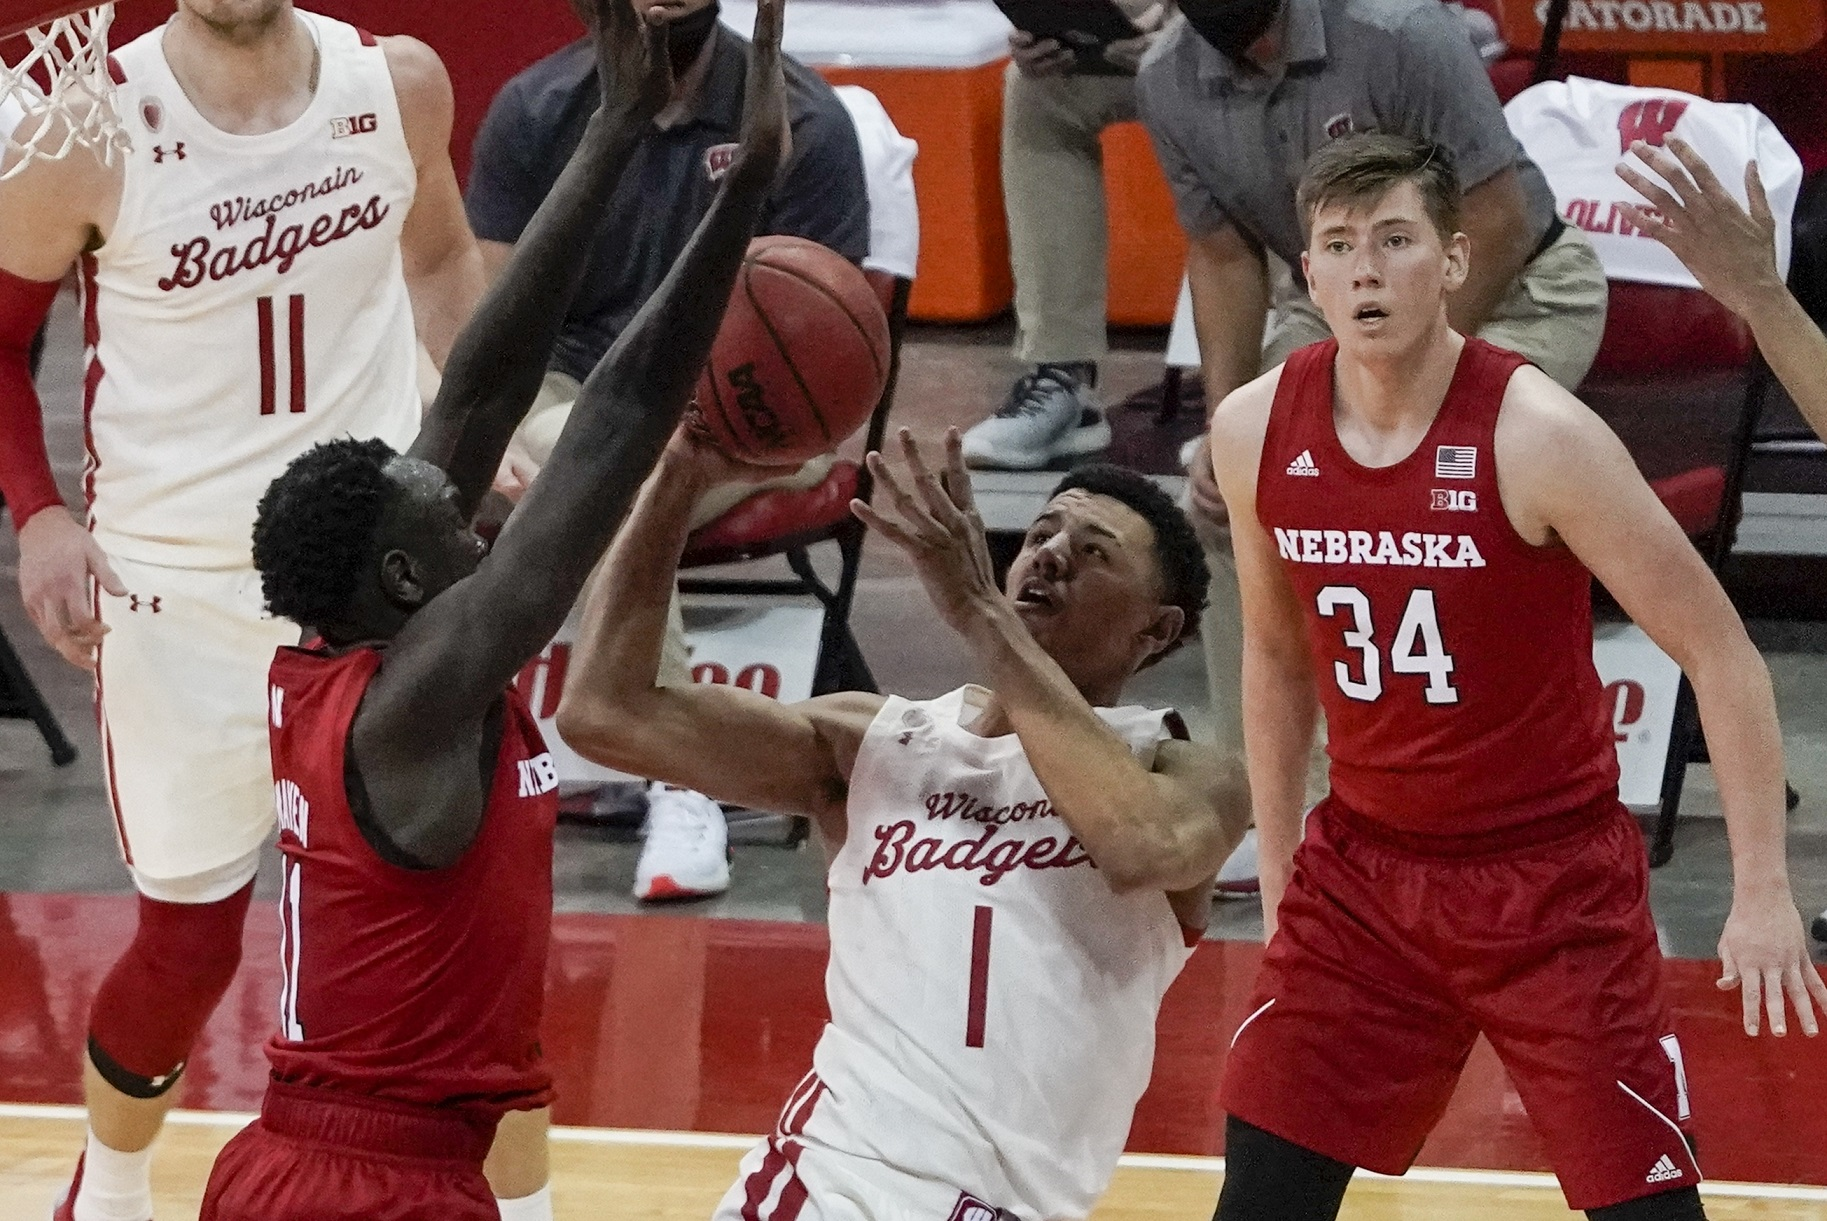 La Crosse's Davis goes for 7 points, 6 rebounds as Badgers open B1G with win